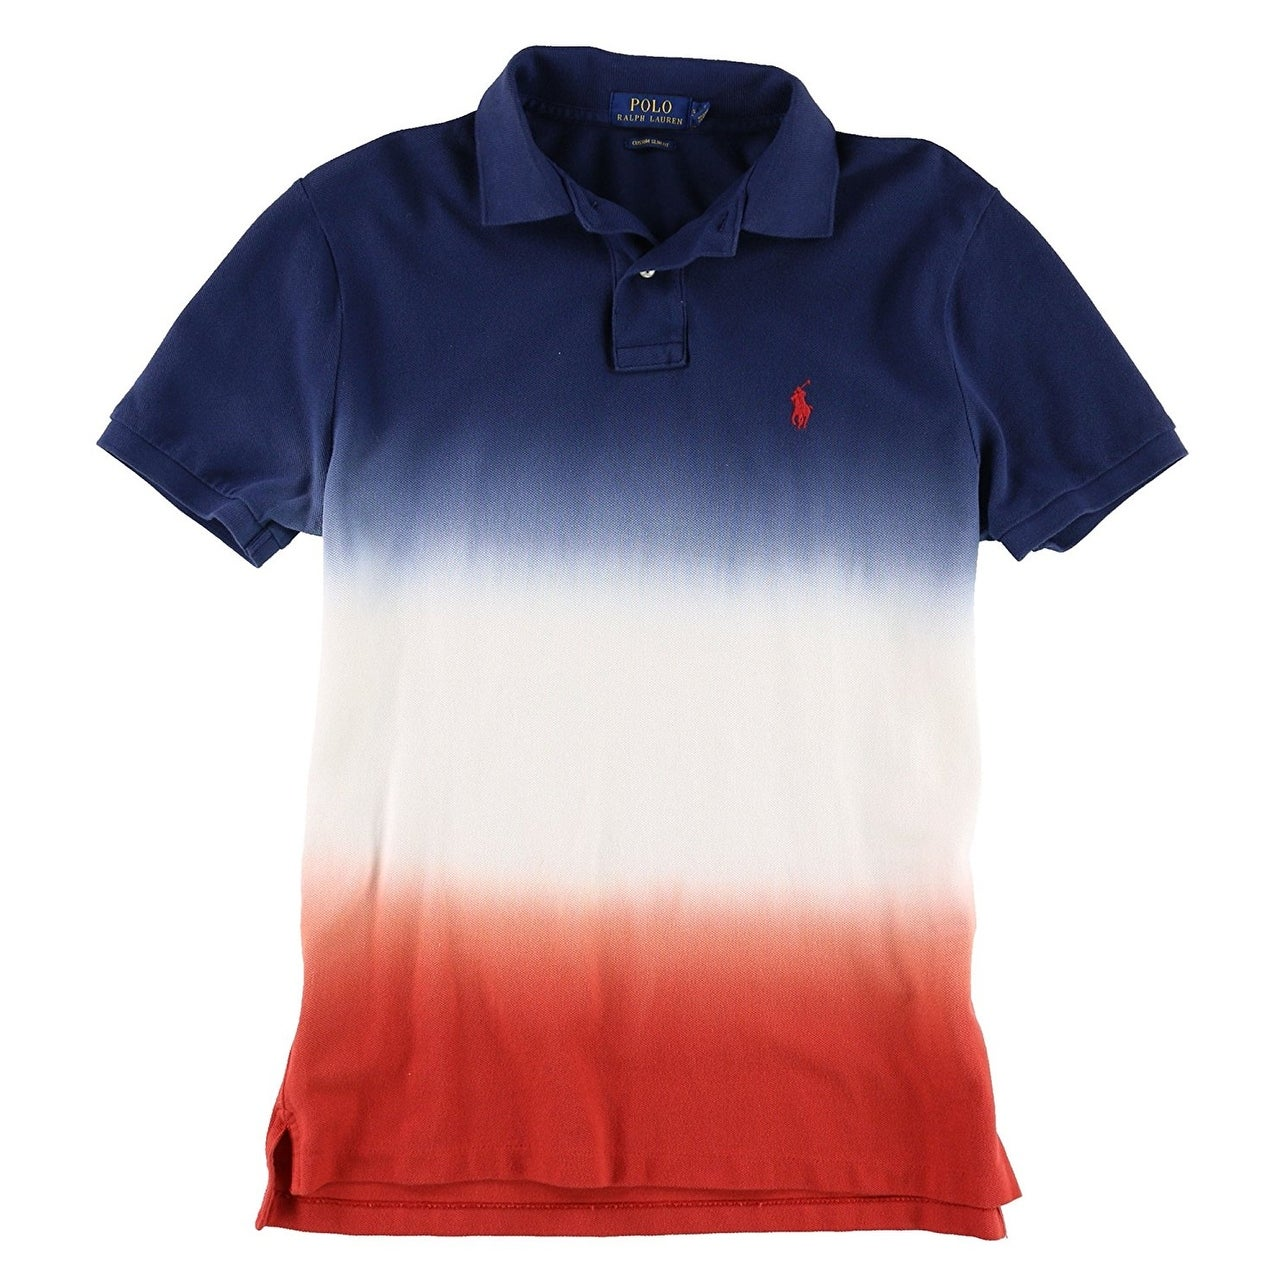 Shop Polo Ralph Lauren New Red White Blue Mens Size Large L Polo